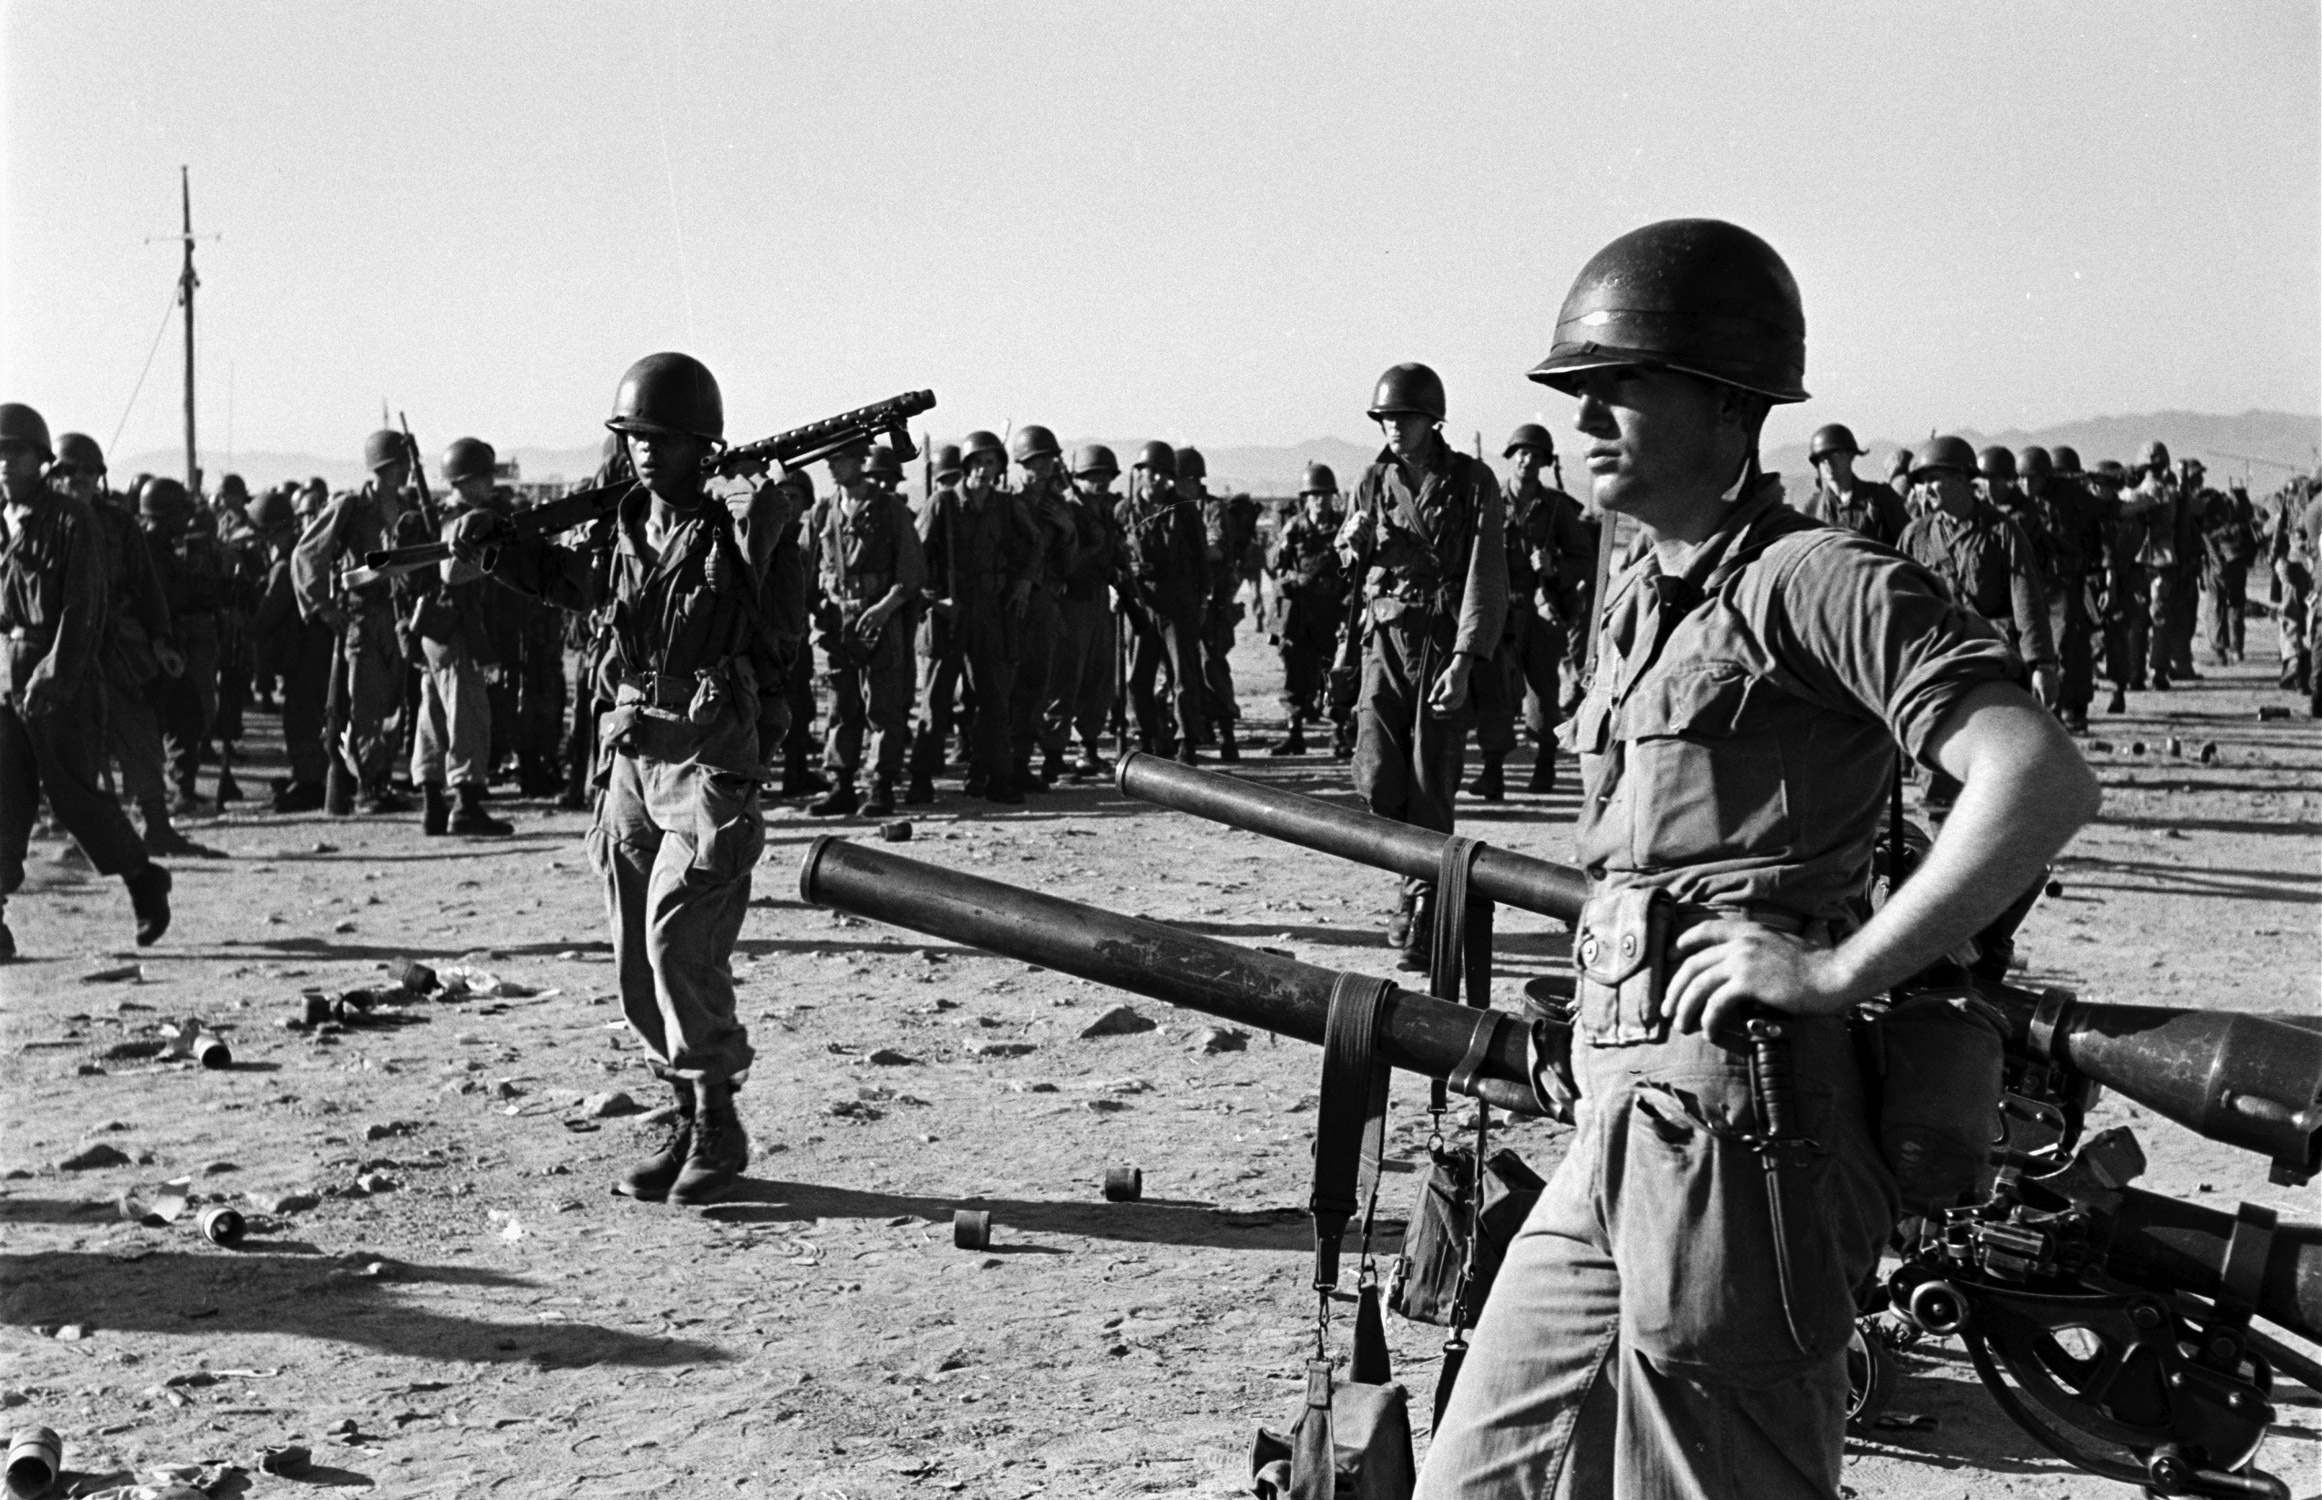 <b>Caption from LIFE.</b> Grim GI stands by tank-busting 75-mm, recoilless rifles as men and equipment build up on beach.